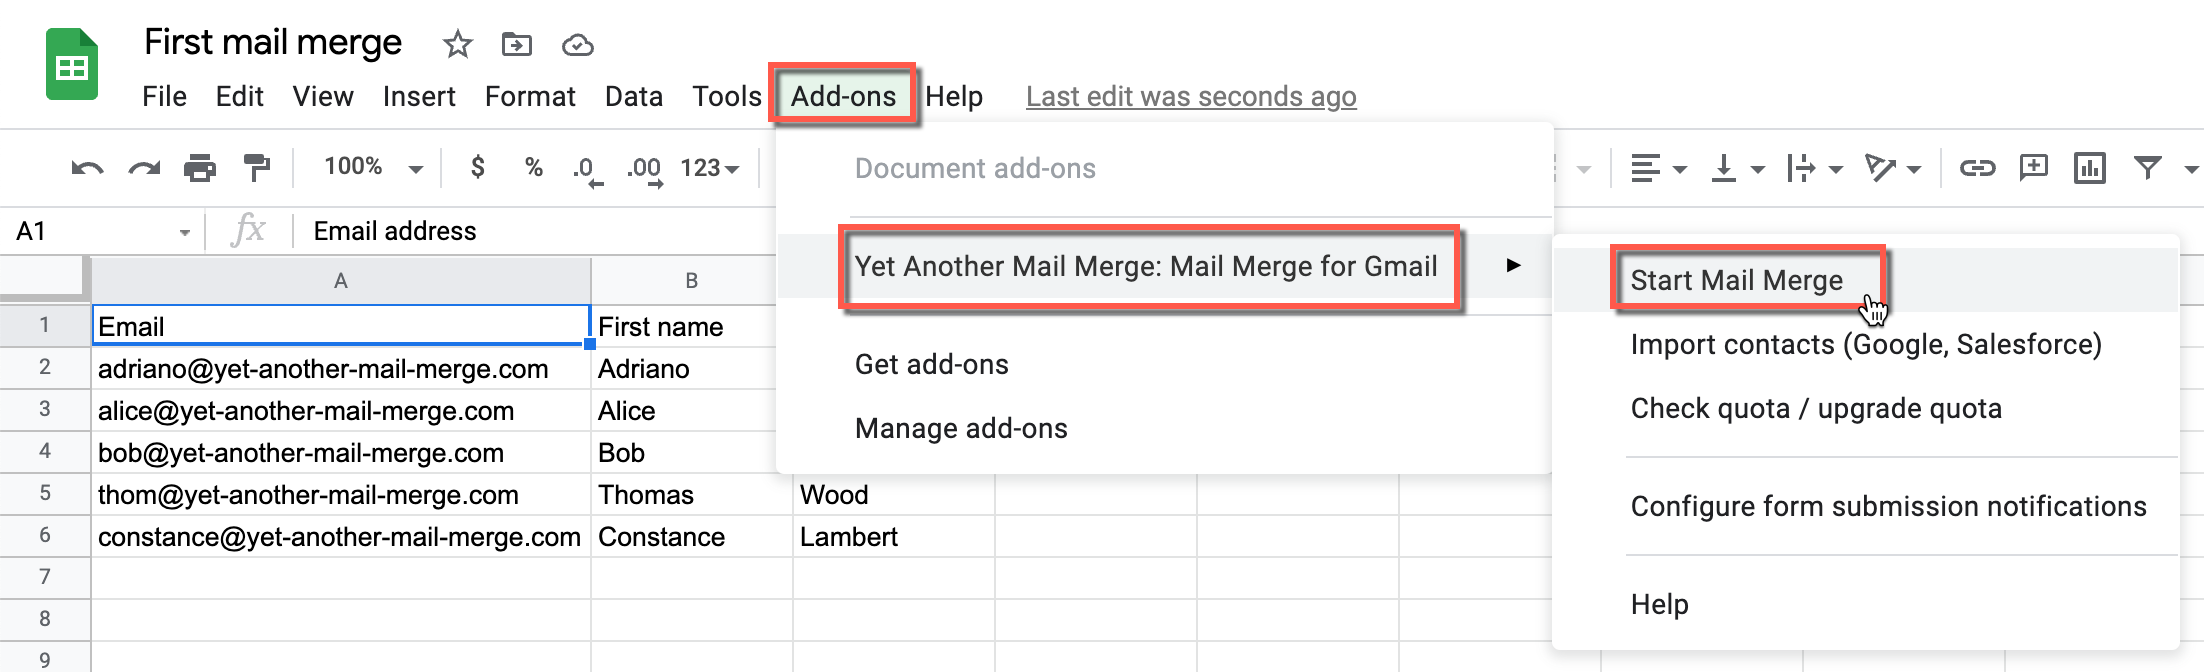 google-sheets-select-add-ons-start-mail-merge-v03.png